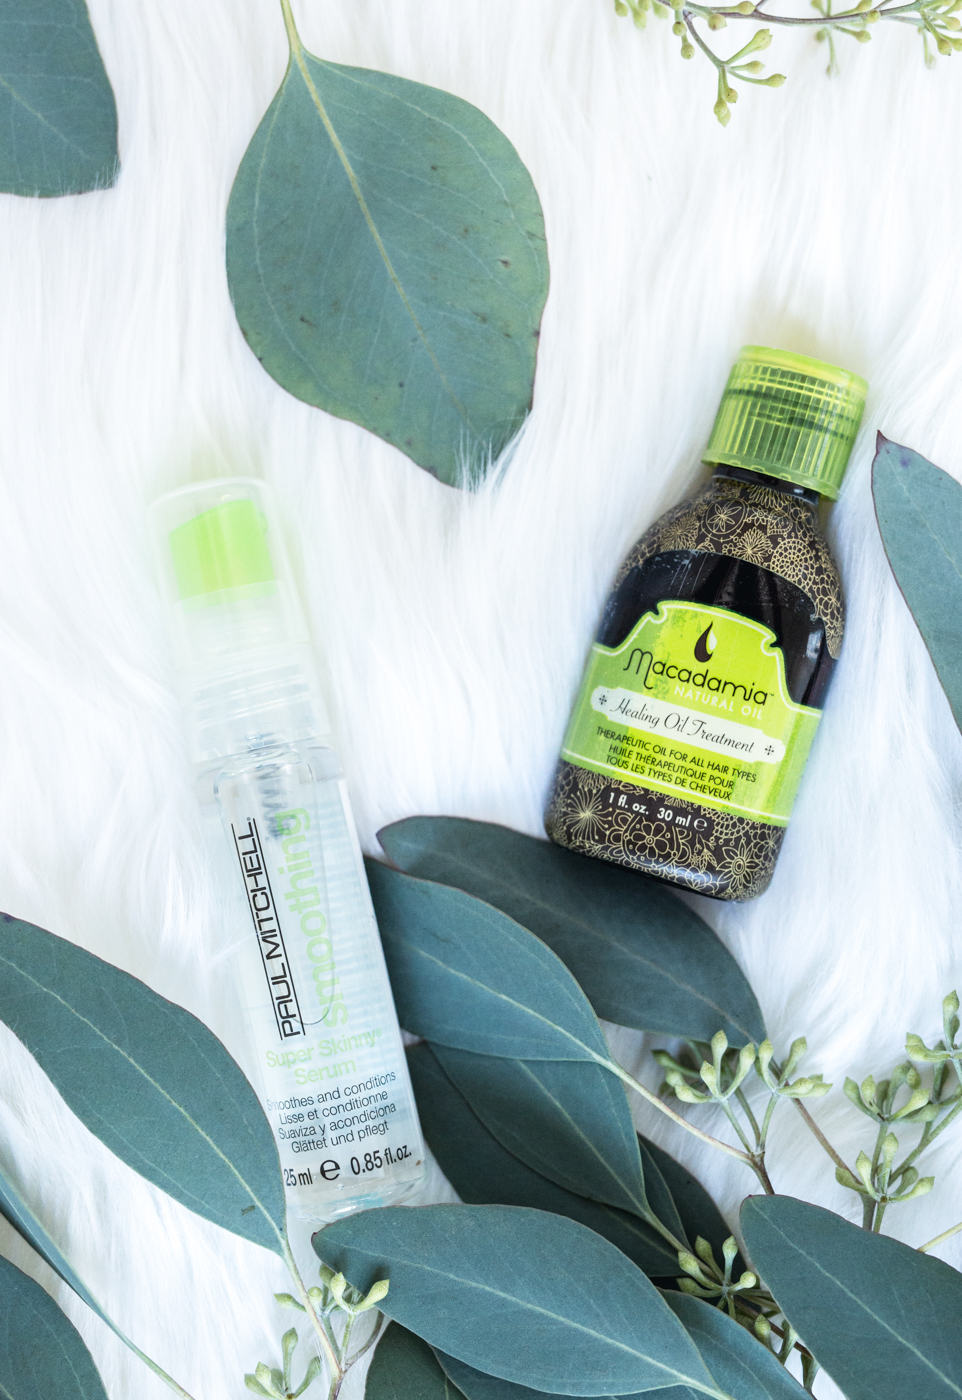 Macadamia Oil Healing Oil Treatment & Paul Mitchell Super Skinny Serum